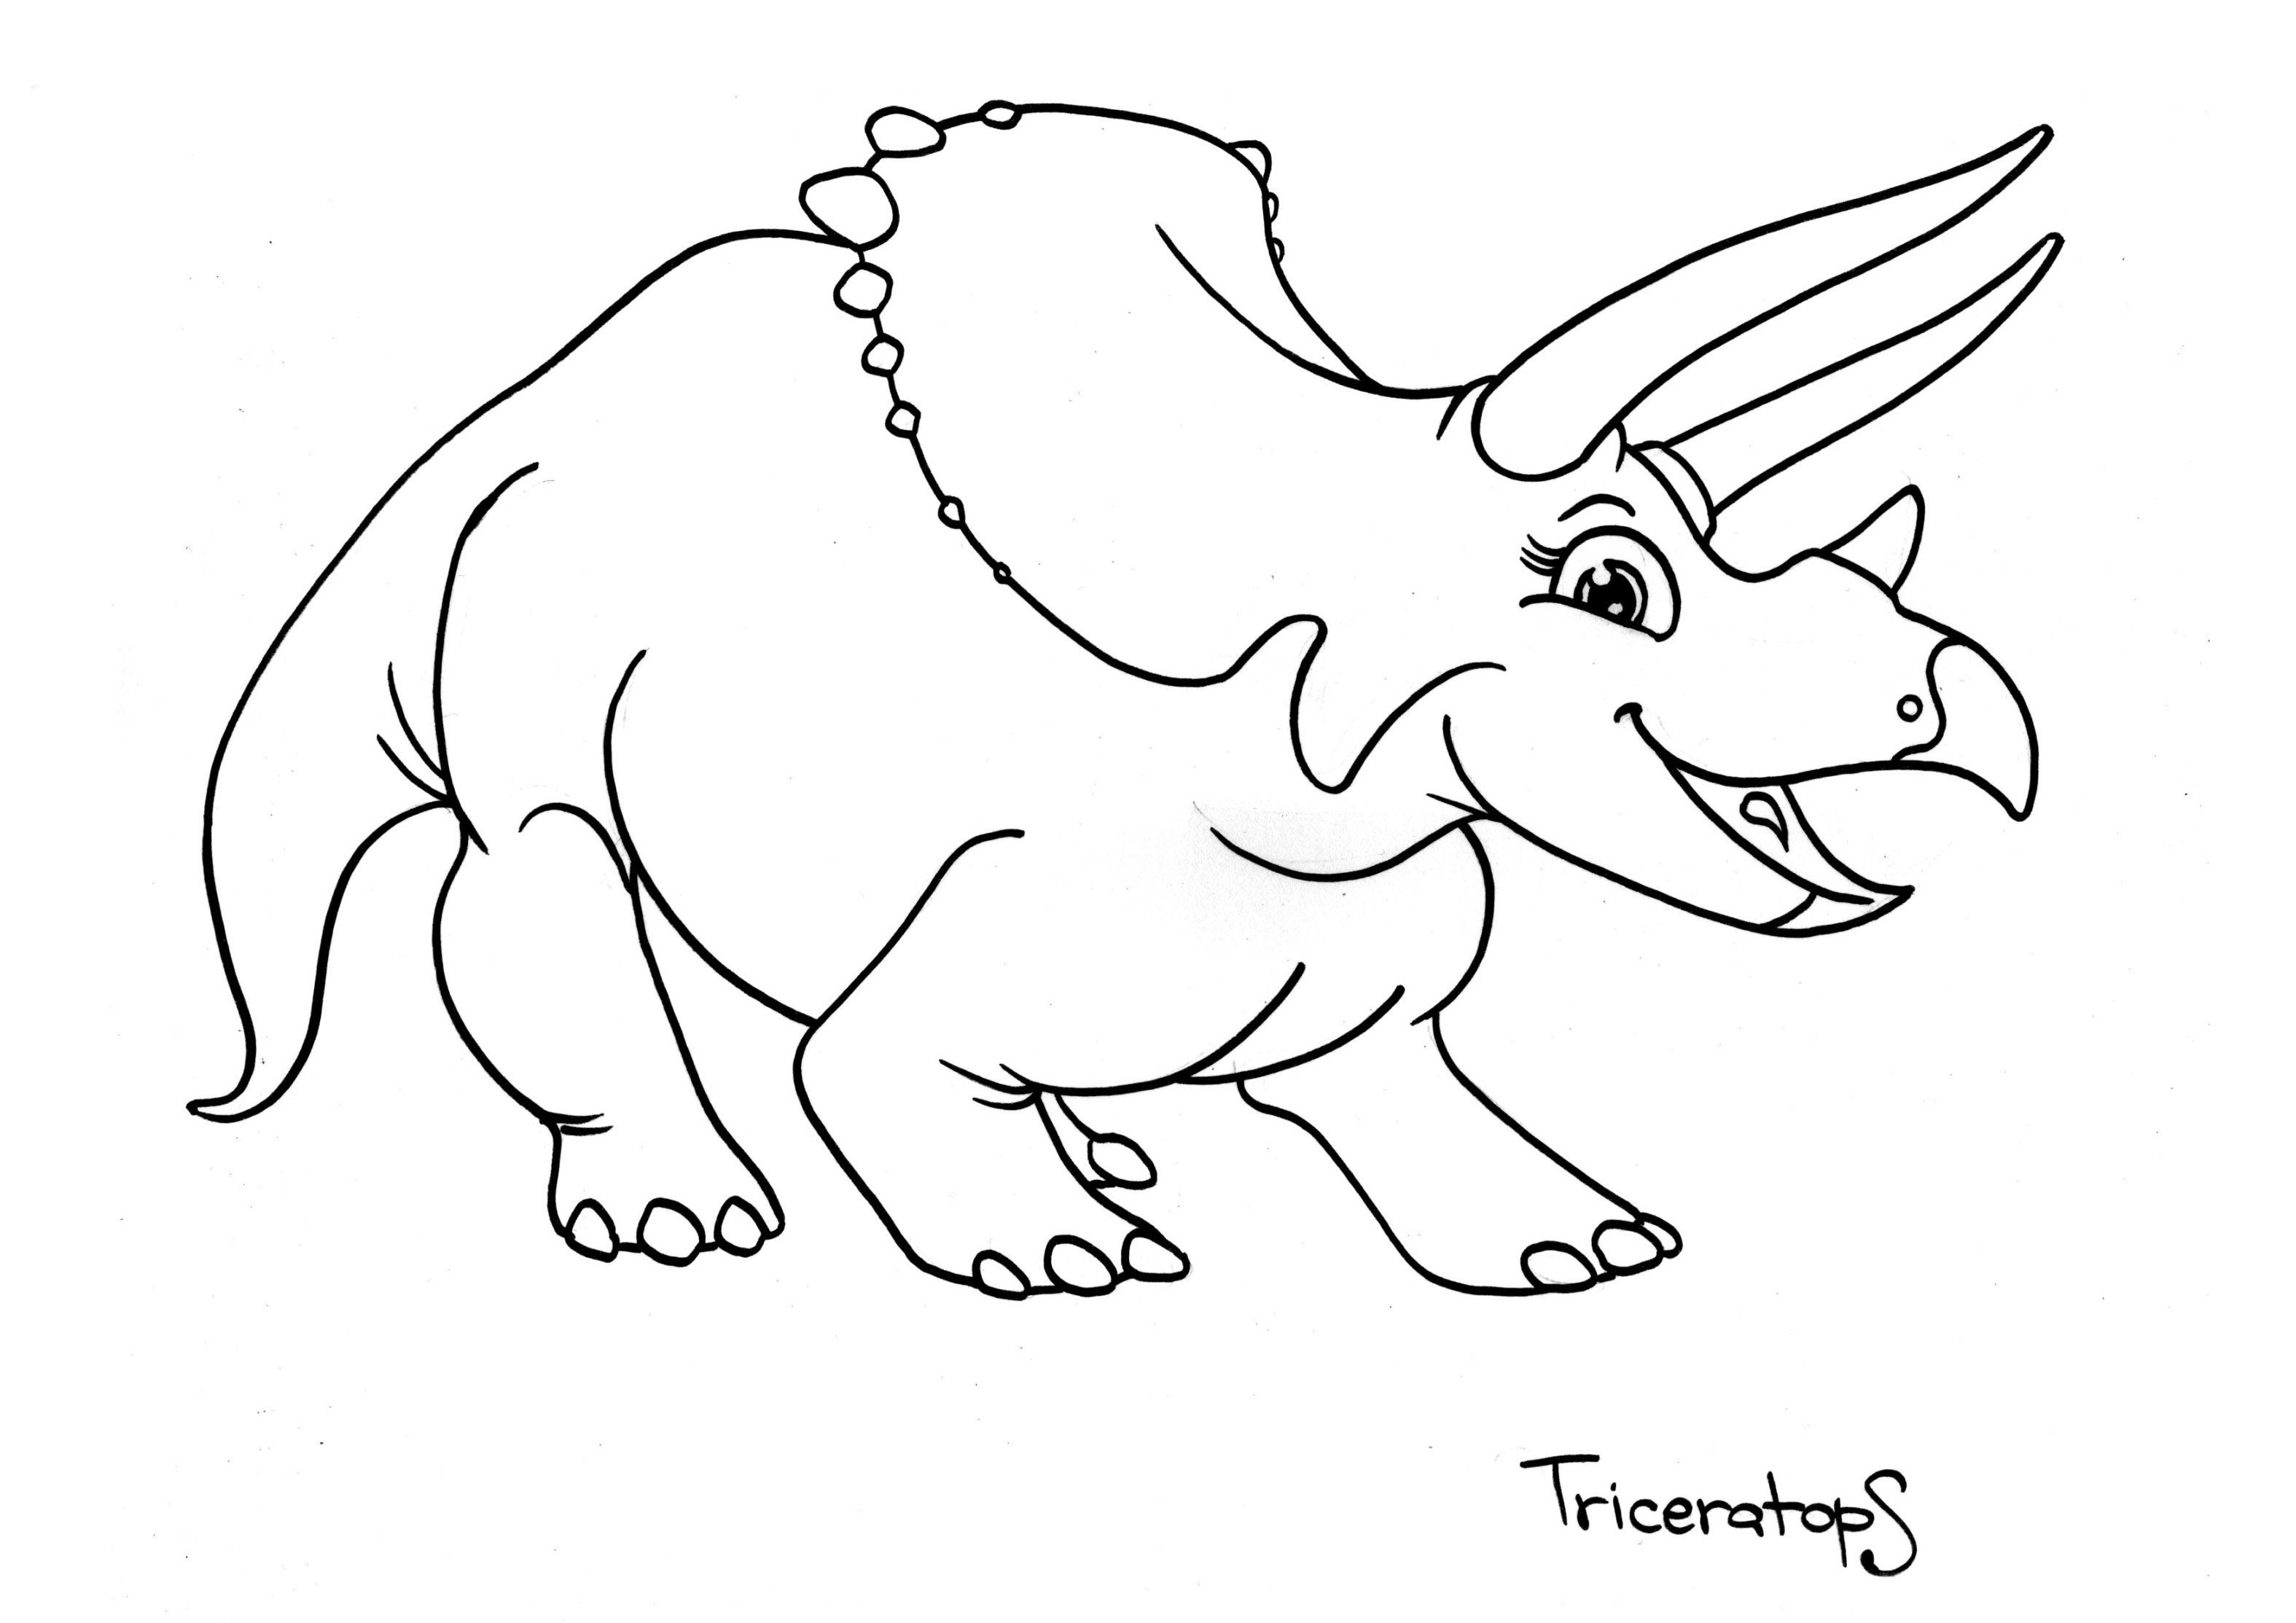 colour in dinosaur pictures free coloring pages printable pictures to color kids dinosaur in colour pictures